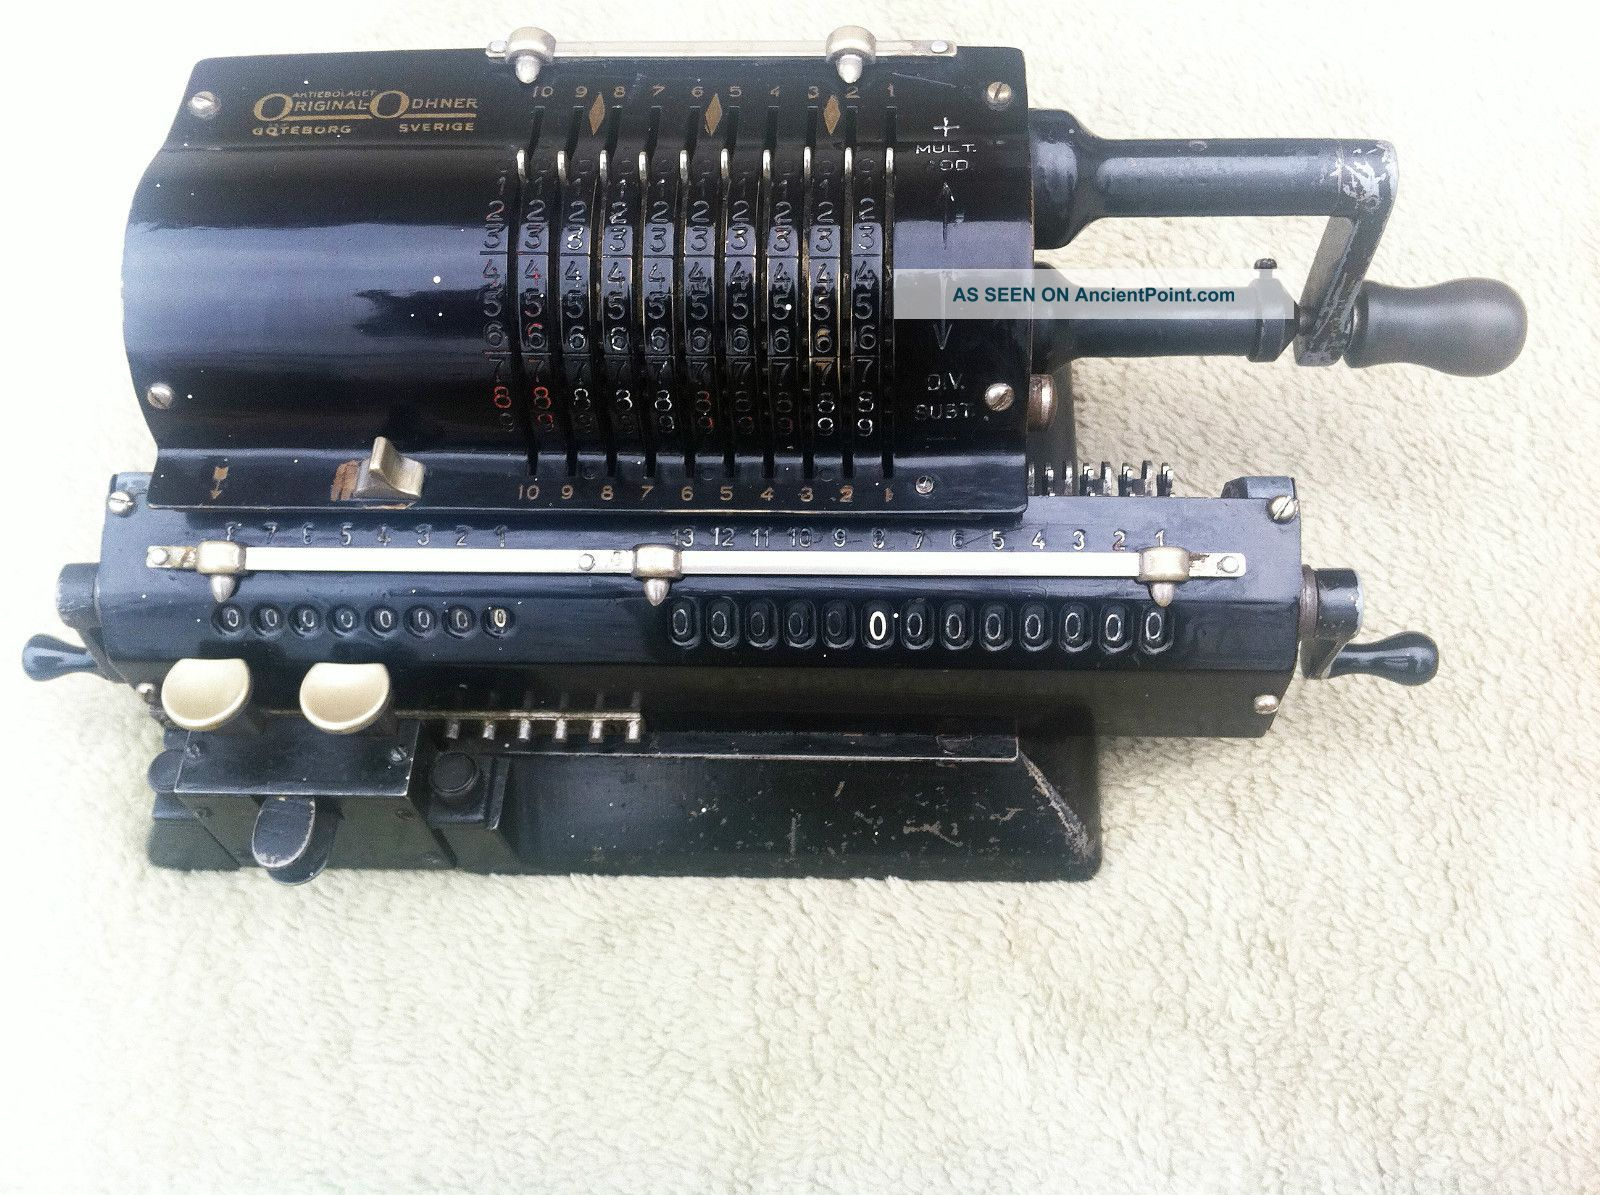 1938 Odhner pinwheel calculator Model 27 photo